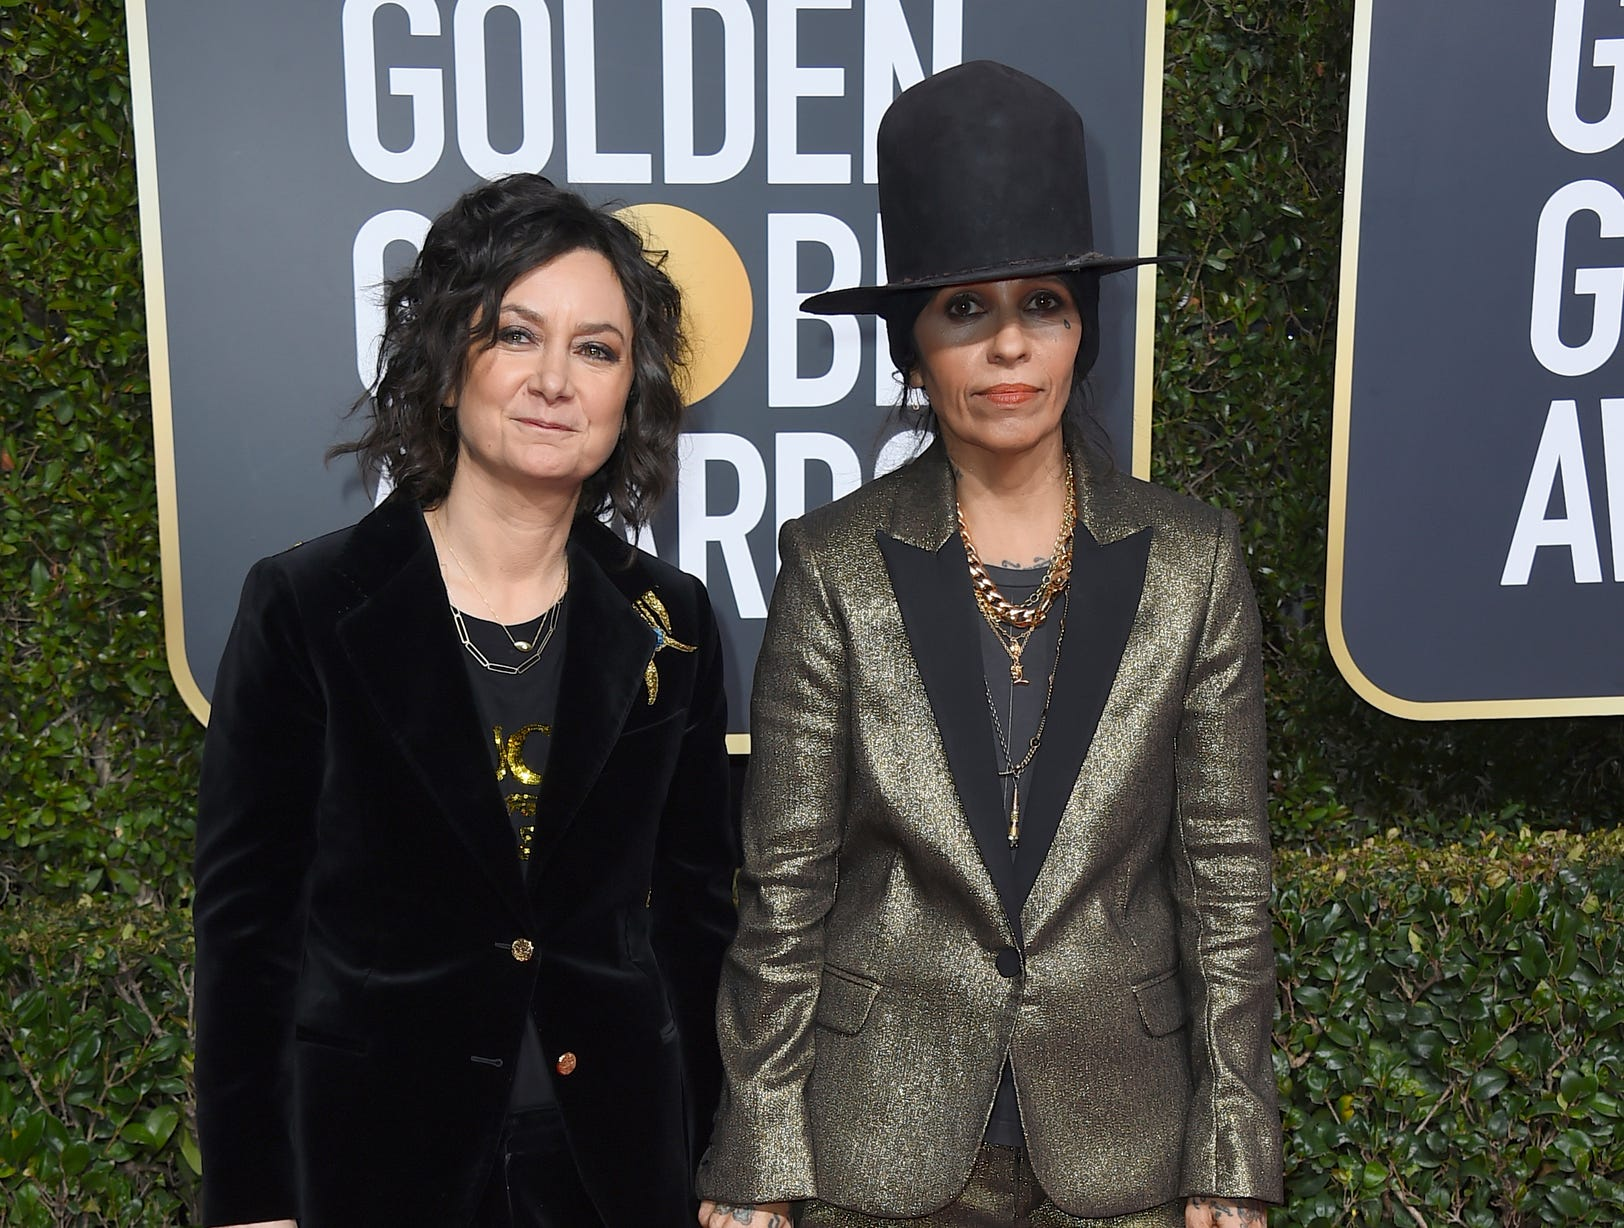 Sara Gilbert, left, and Linda Perry arrive at the 76th annual Golden Globe Awards at the Beverly Hilton Hotel.